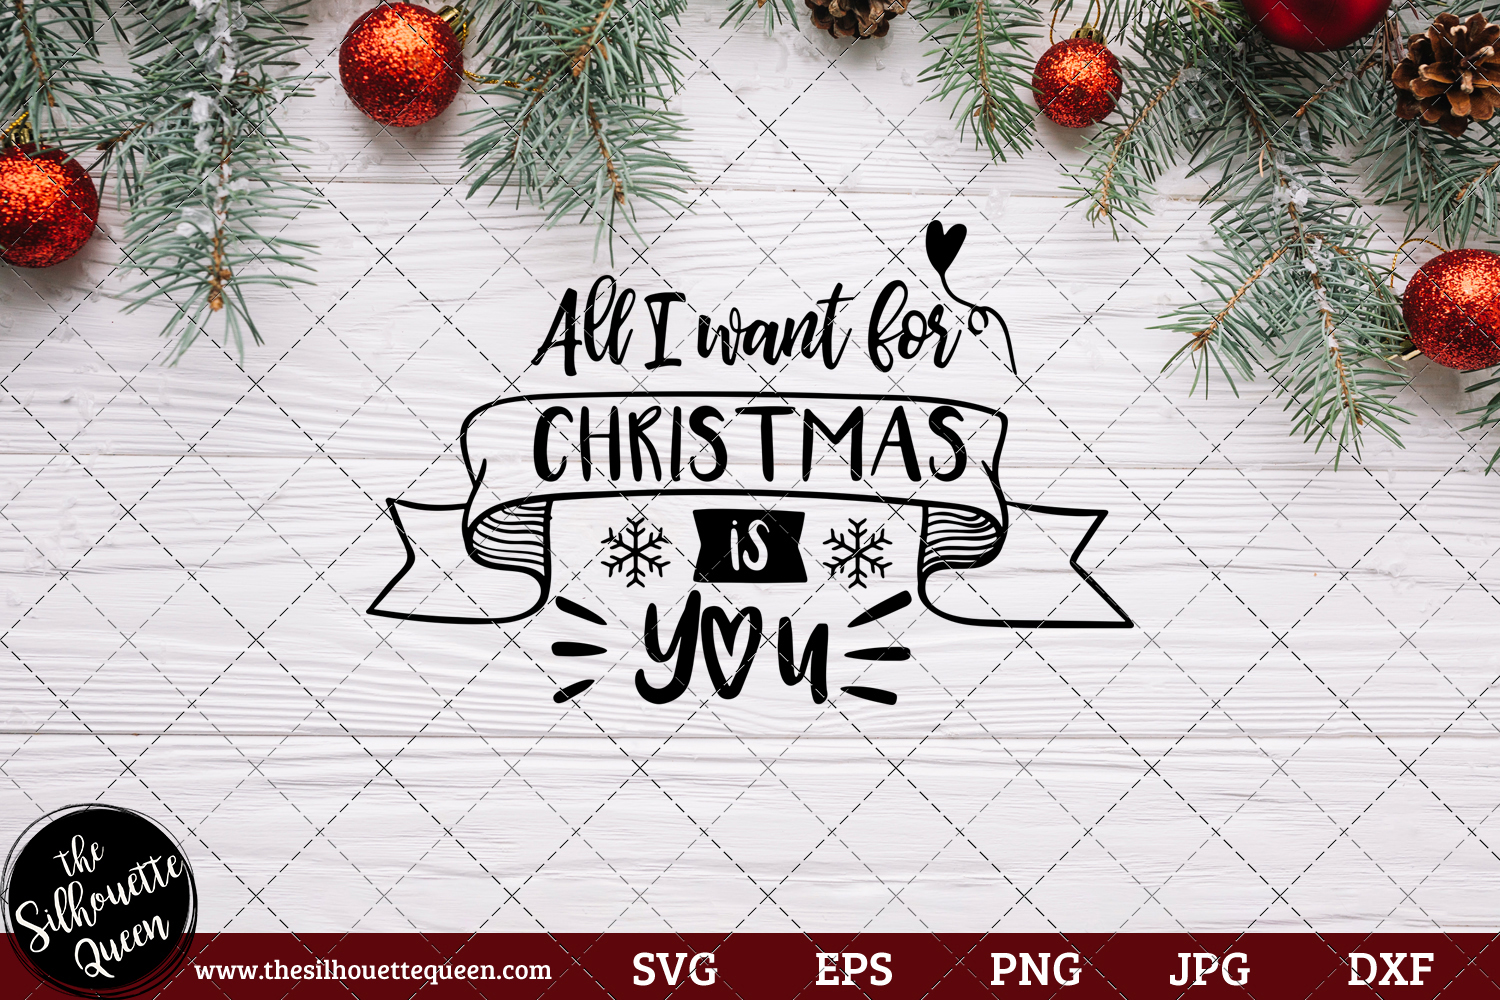 All I Want For Christmas Is You Saying SVG.